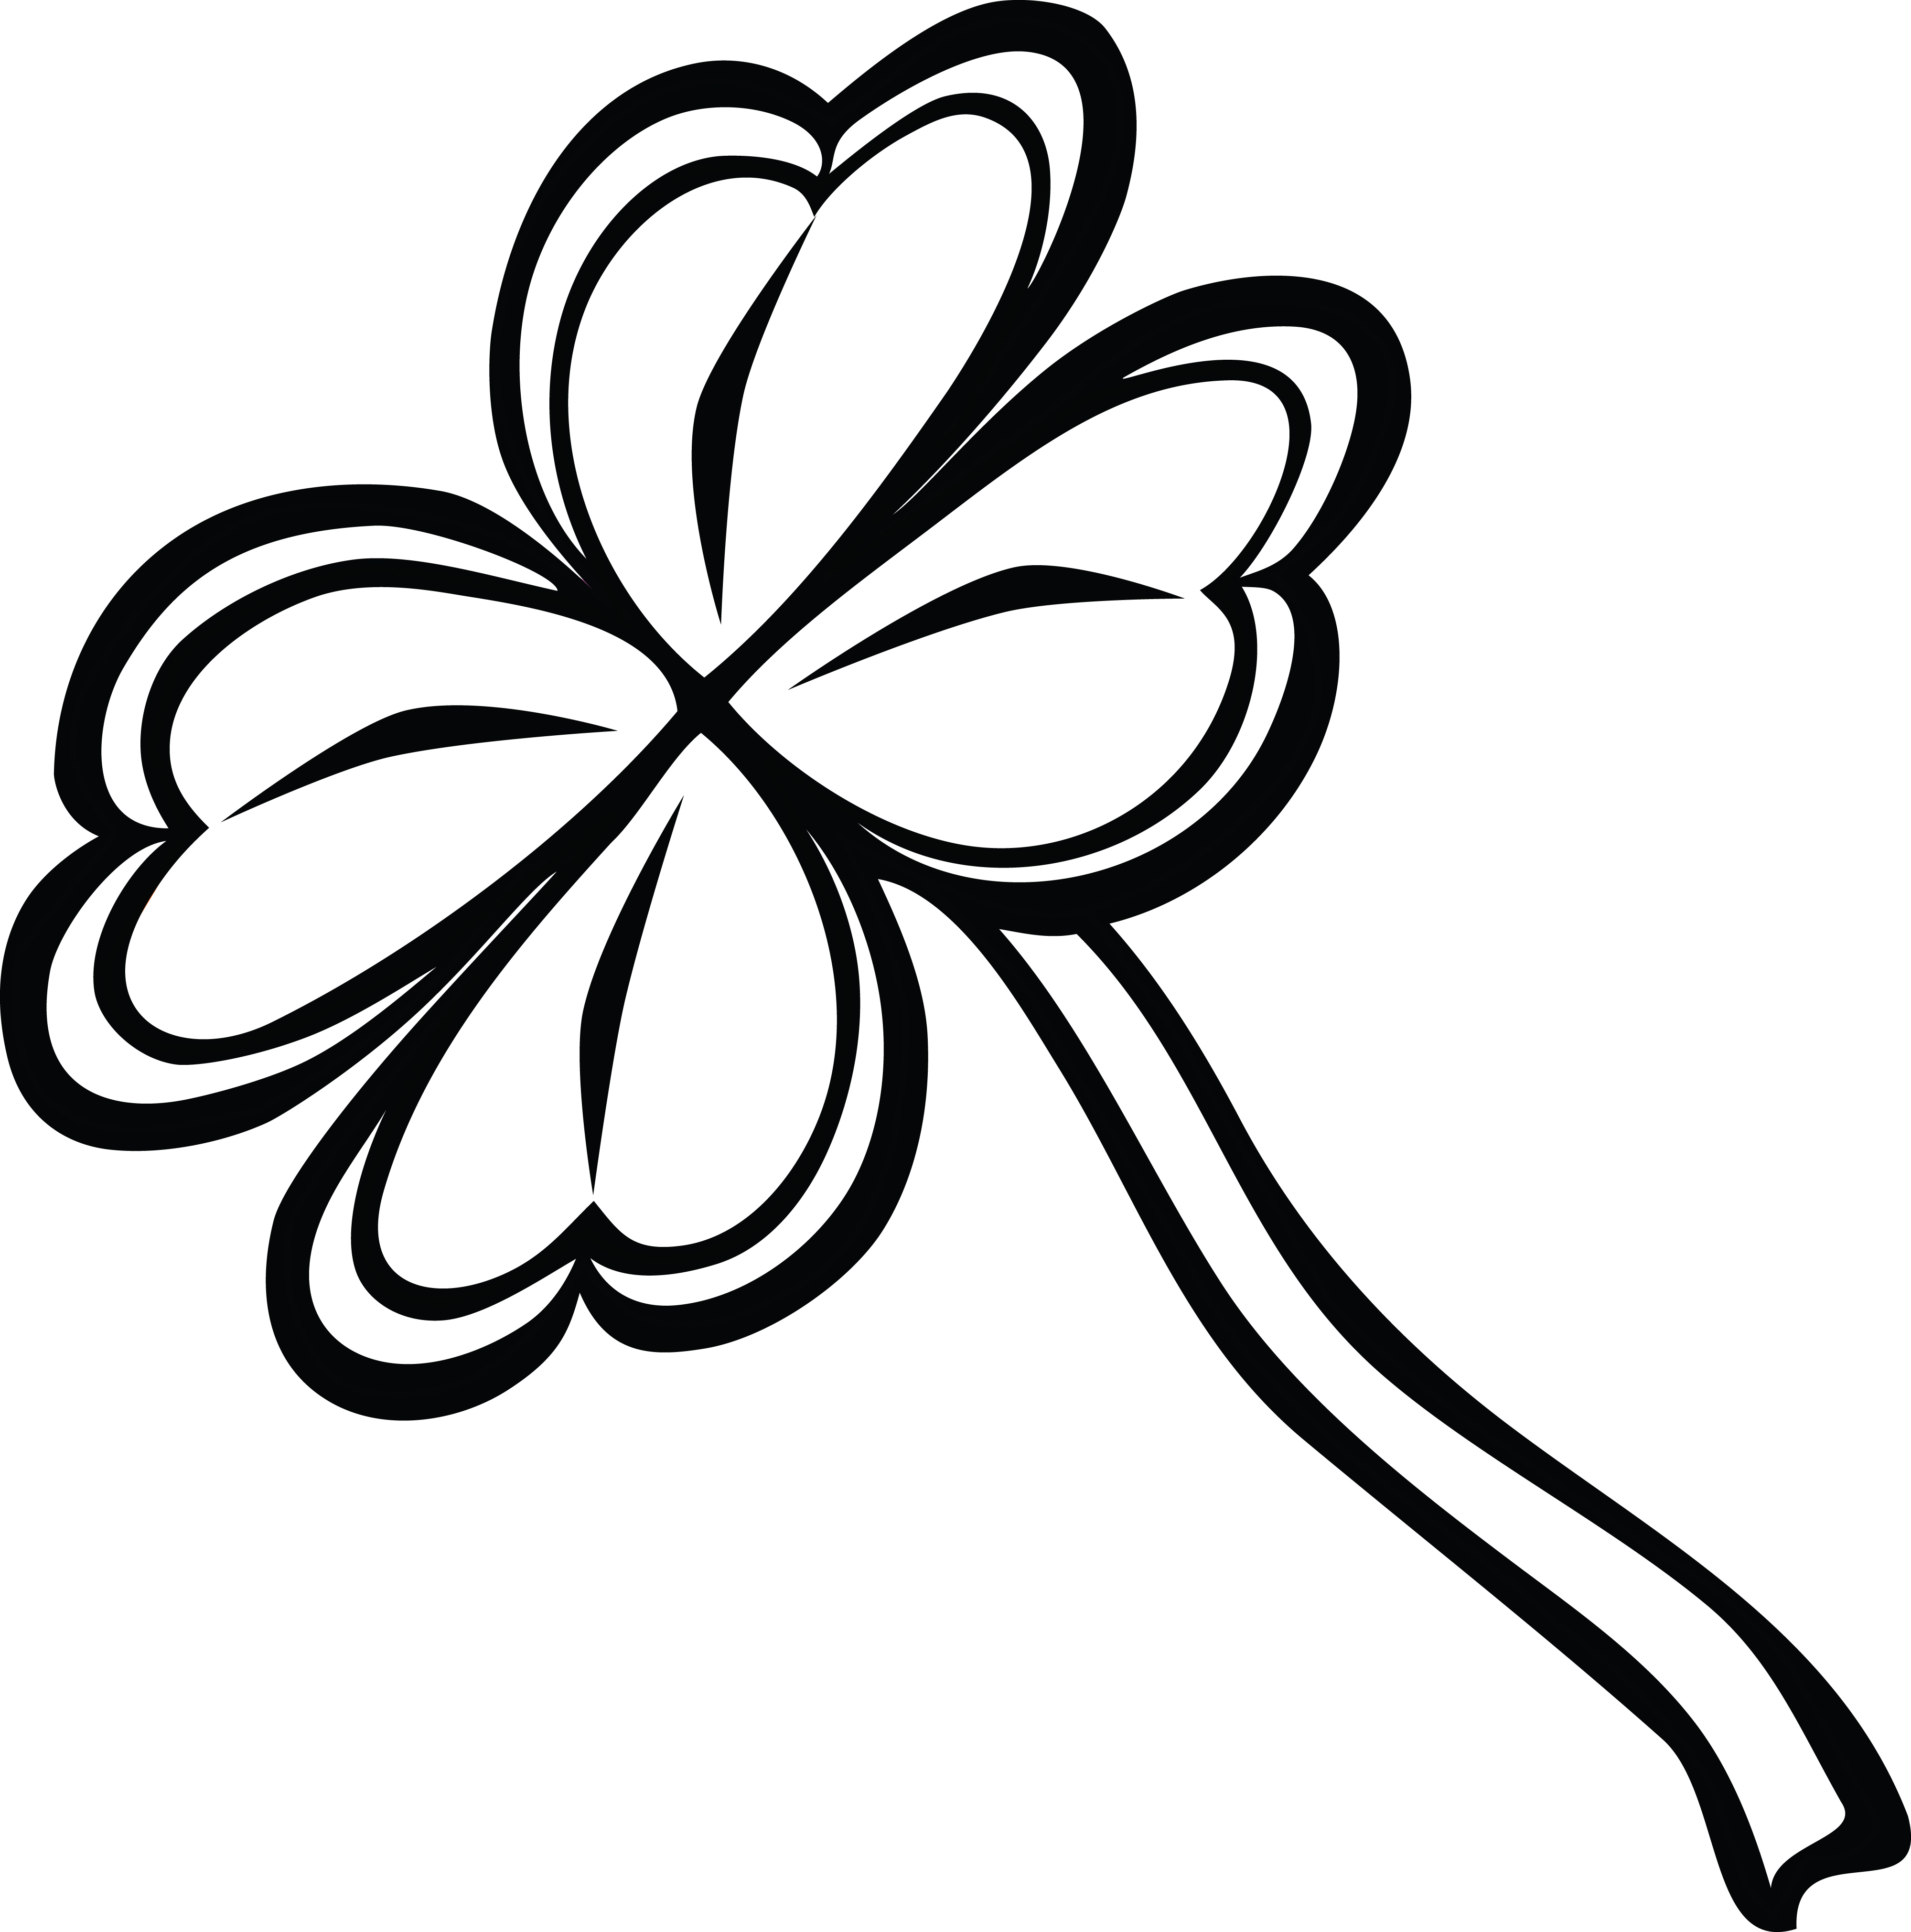 free clipart of a black and white st paddys day 4 leaf